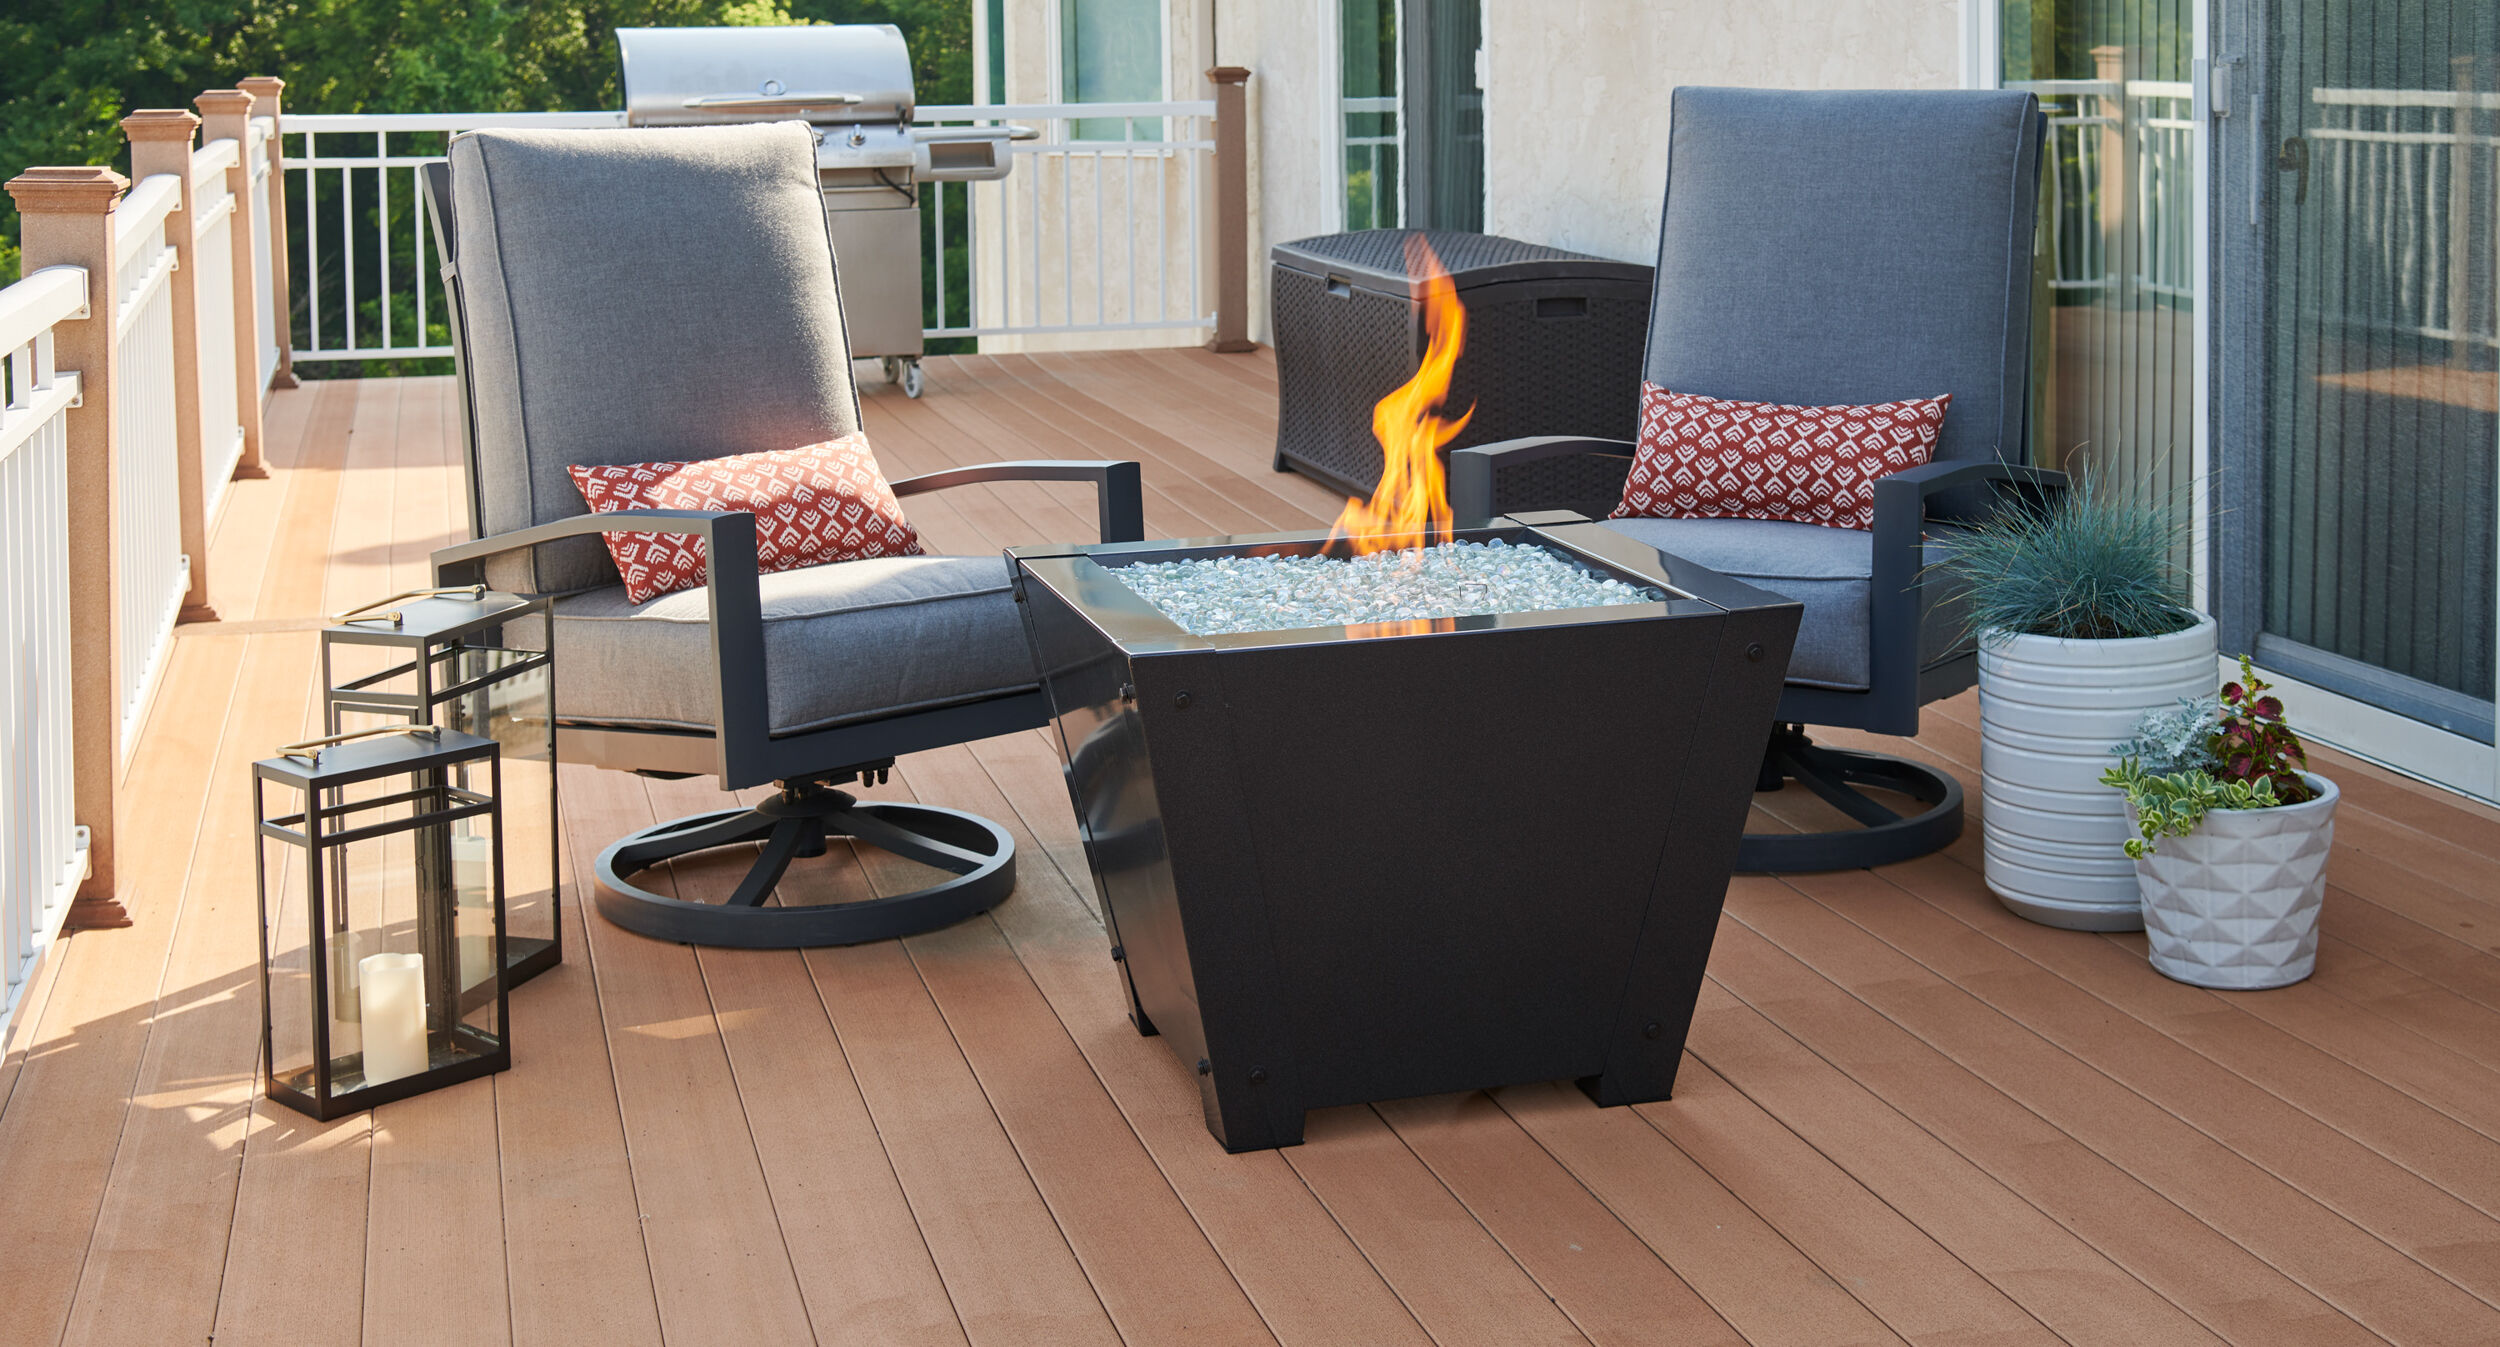 Can I Put A Fire Pit On My Wood Deck Woodlanddirect Com